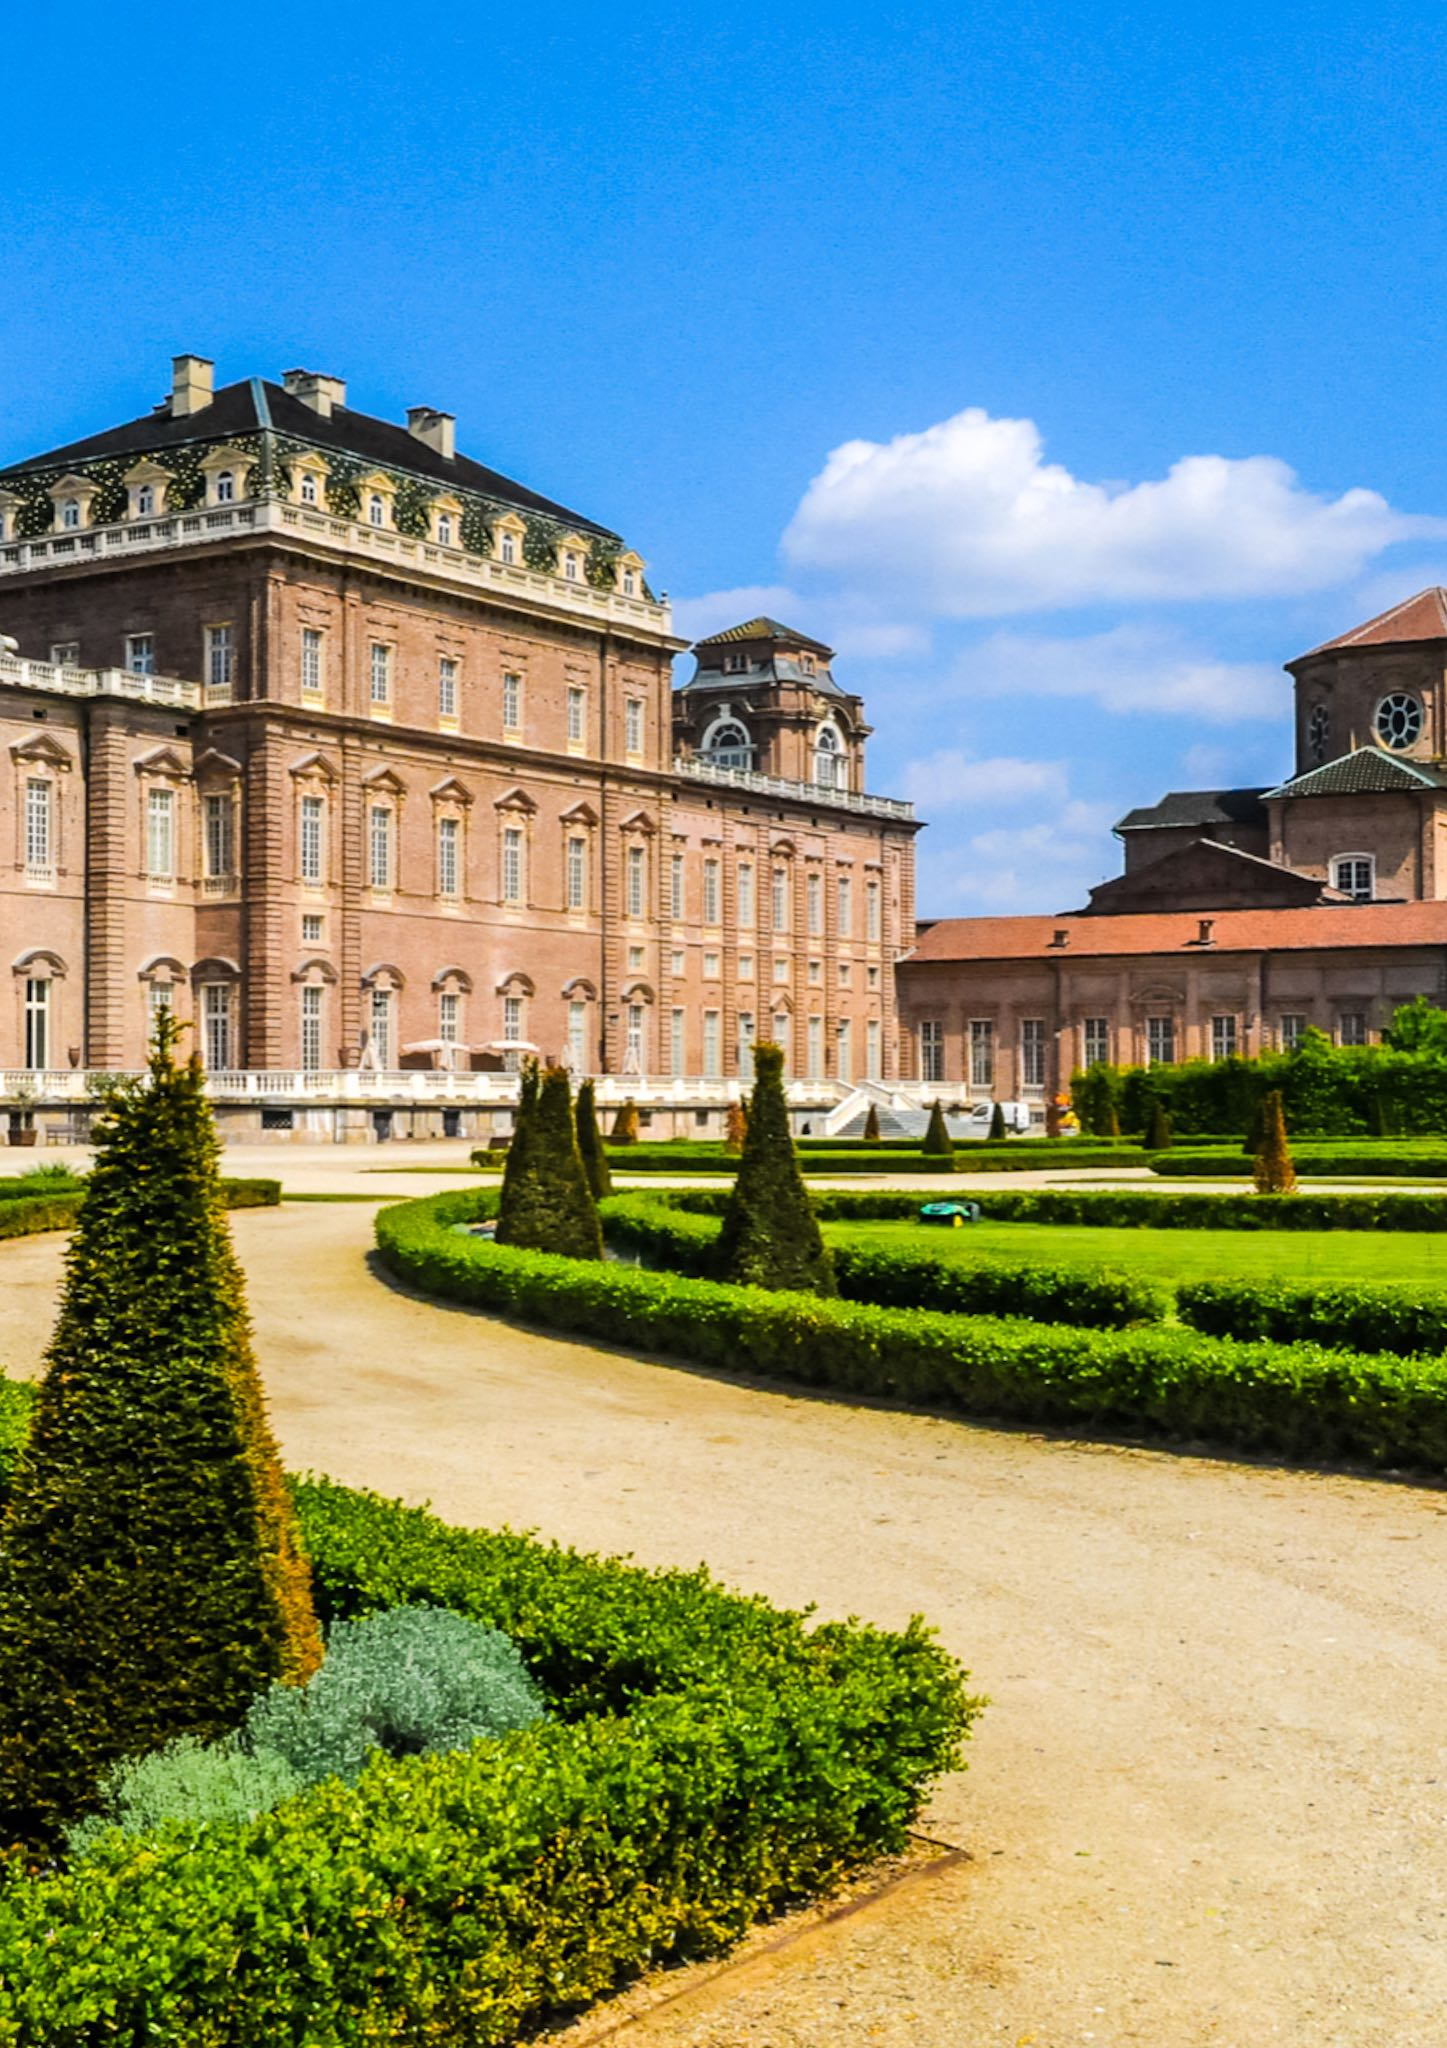 The Royal Palace of Venaria, the' stunning estate of the Savoy family located on the outskirts of Turin